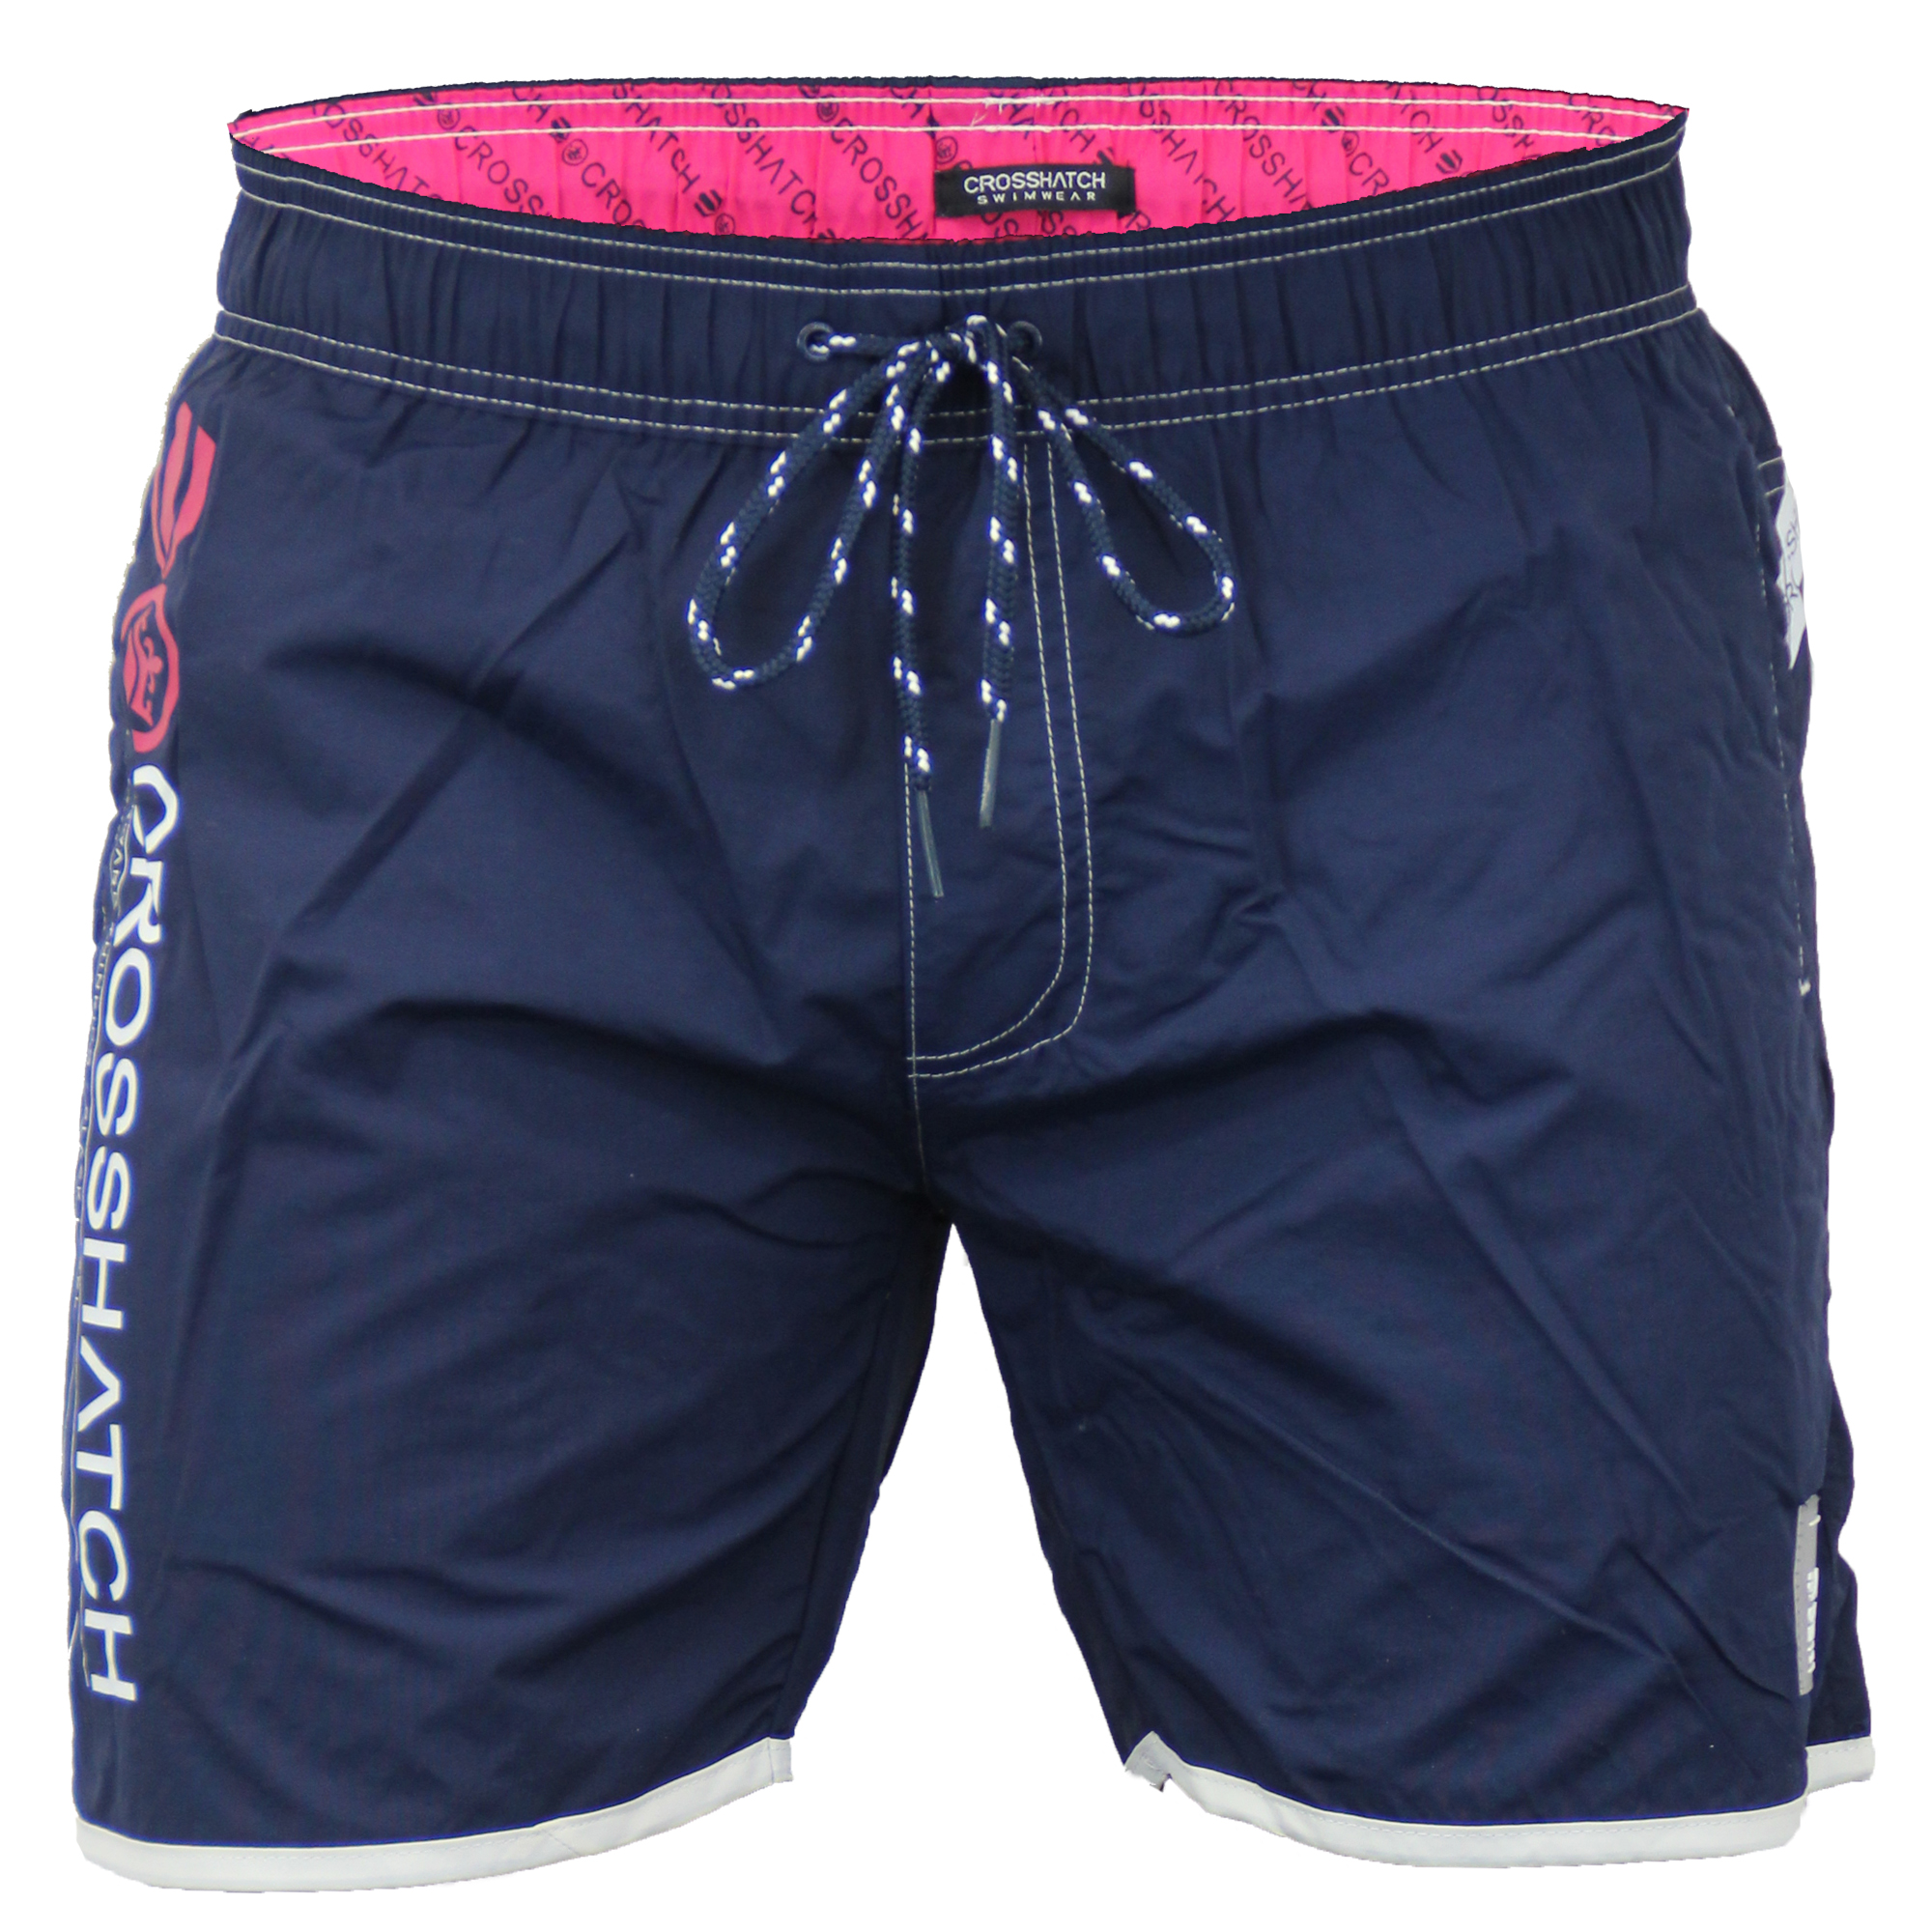 May 16, · Hello, i am pretty new at surfing, and before i go out for real, I want to make sure I am doing every thing right. I just bought boardshorts for the first time, and i am wondering what i .